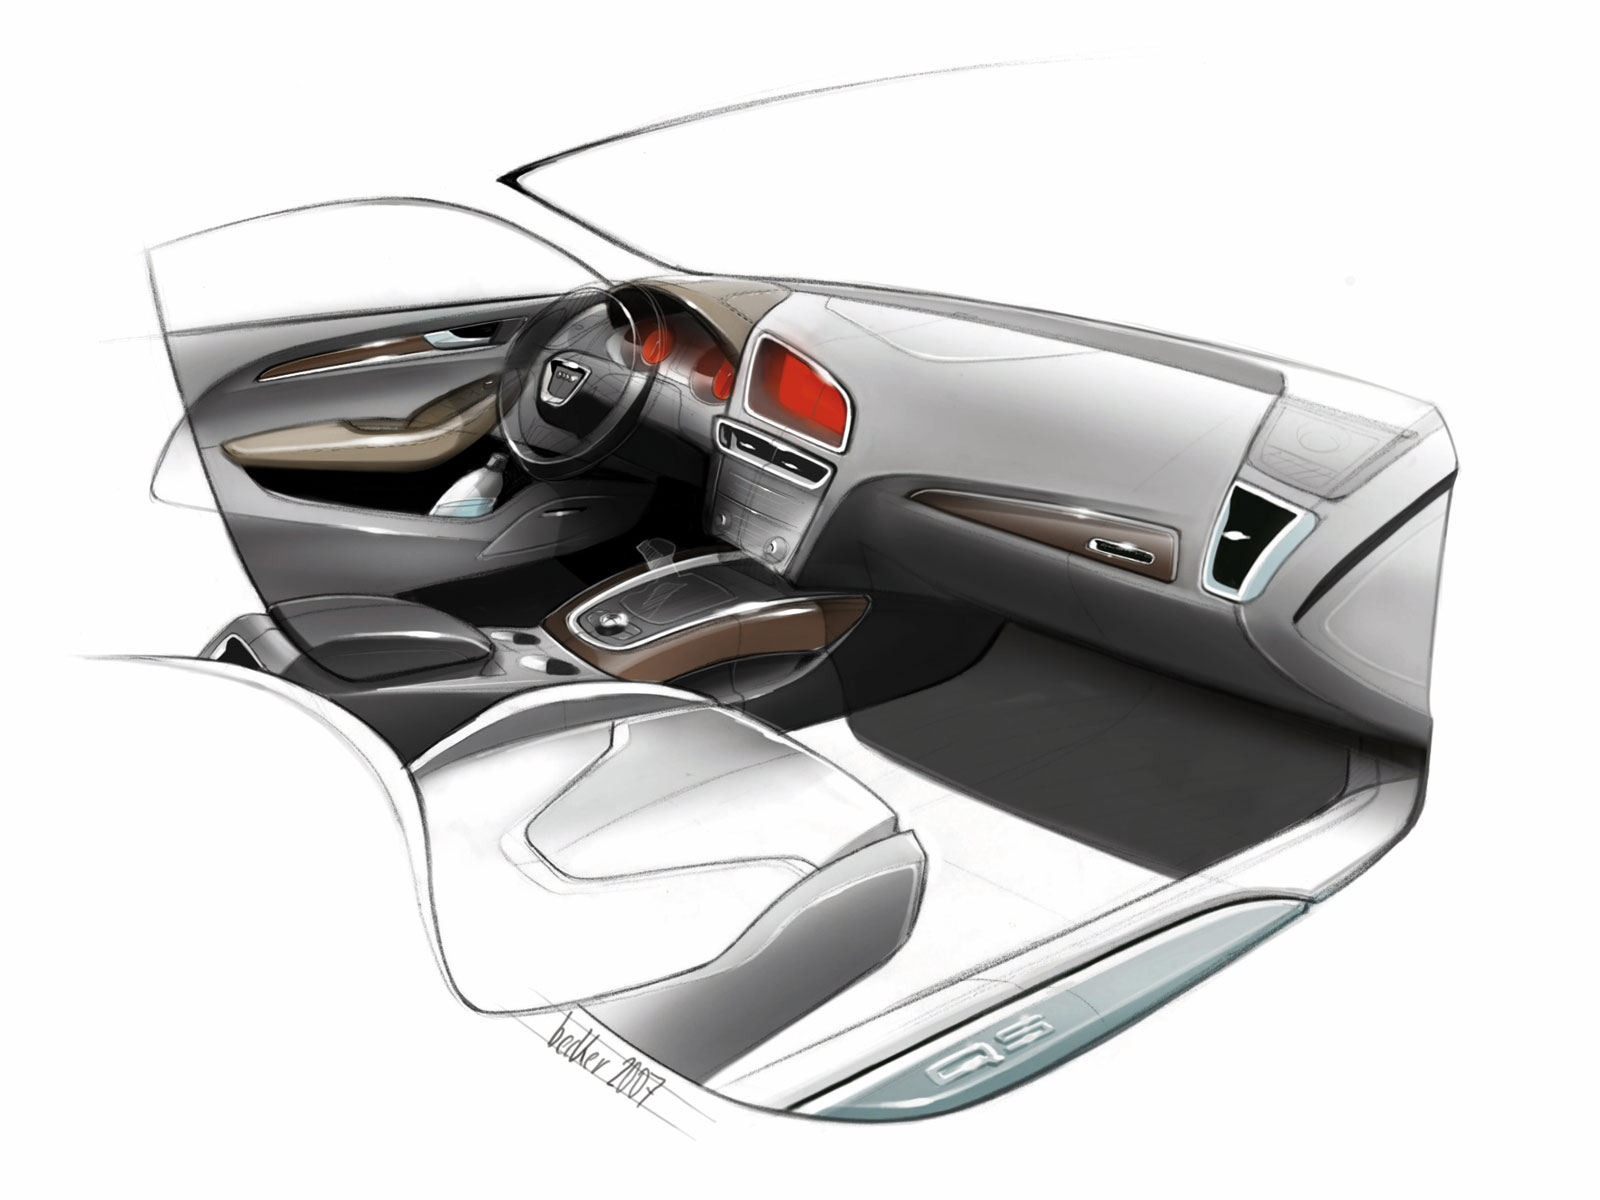 Interior design ideas automotive interior designs - Car interior design ...